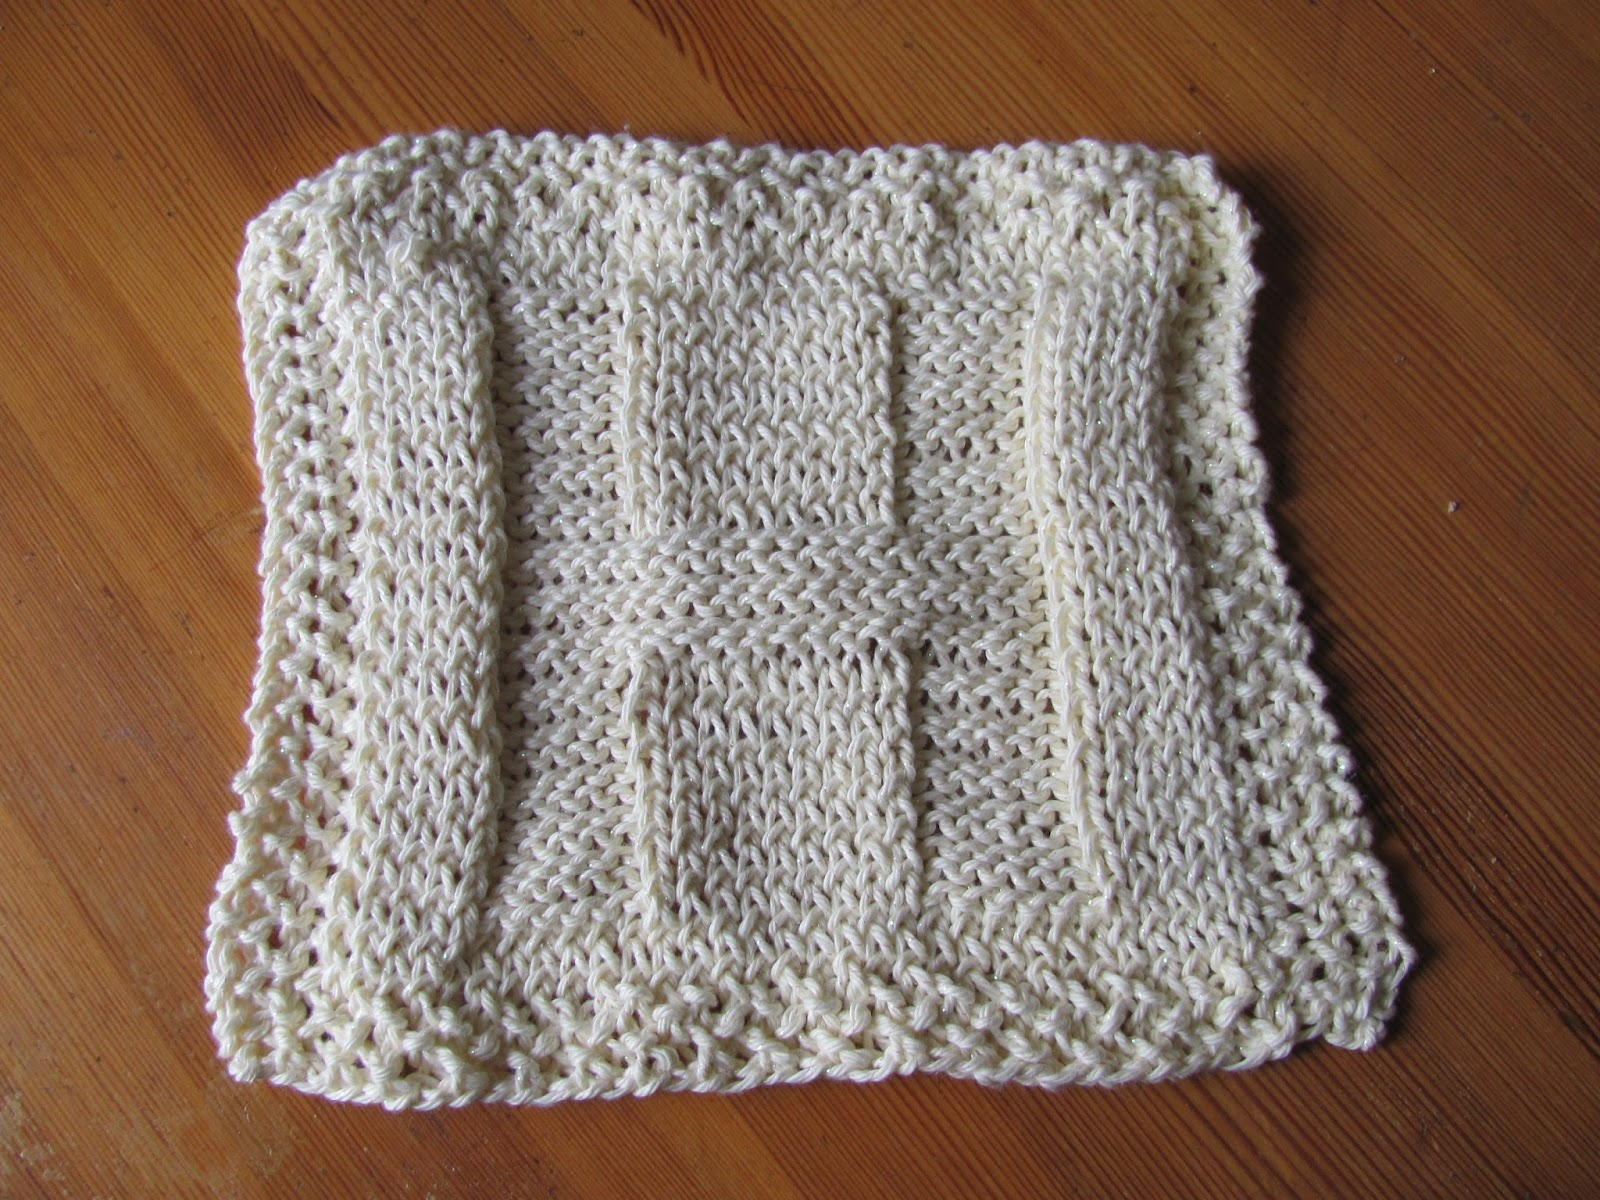 Washcloth knitted for our Dublin kitchen